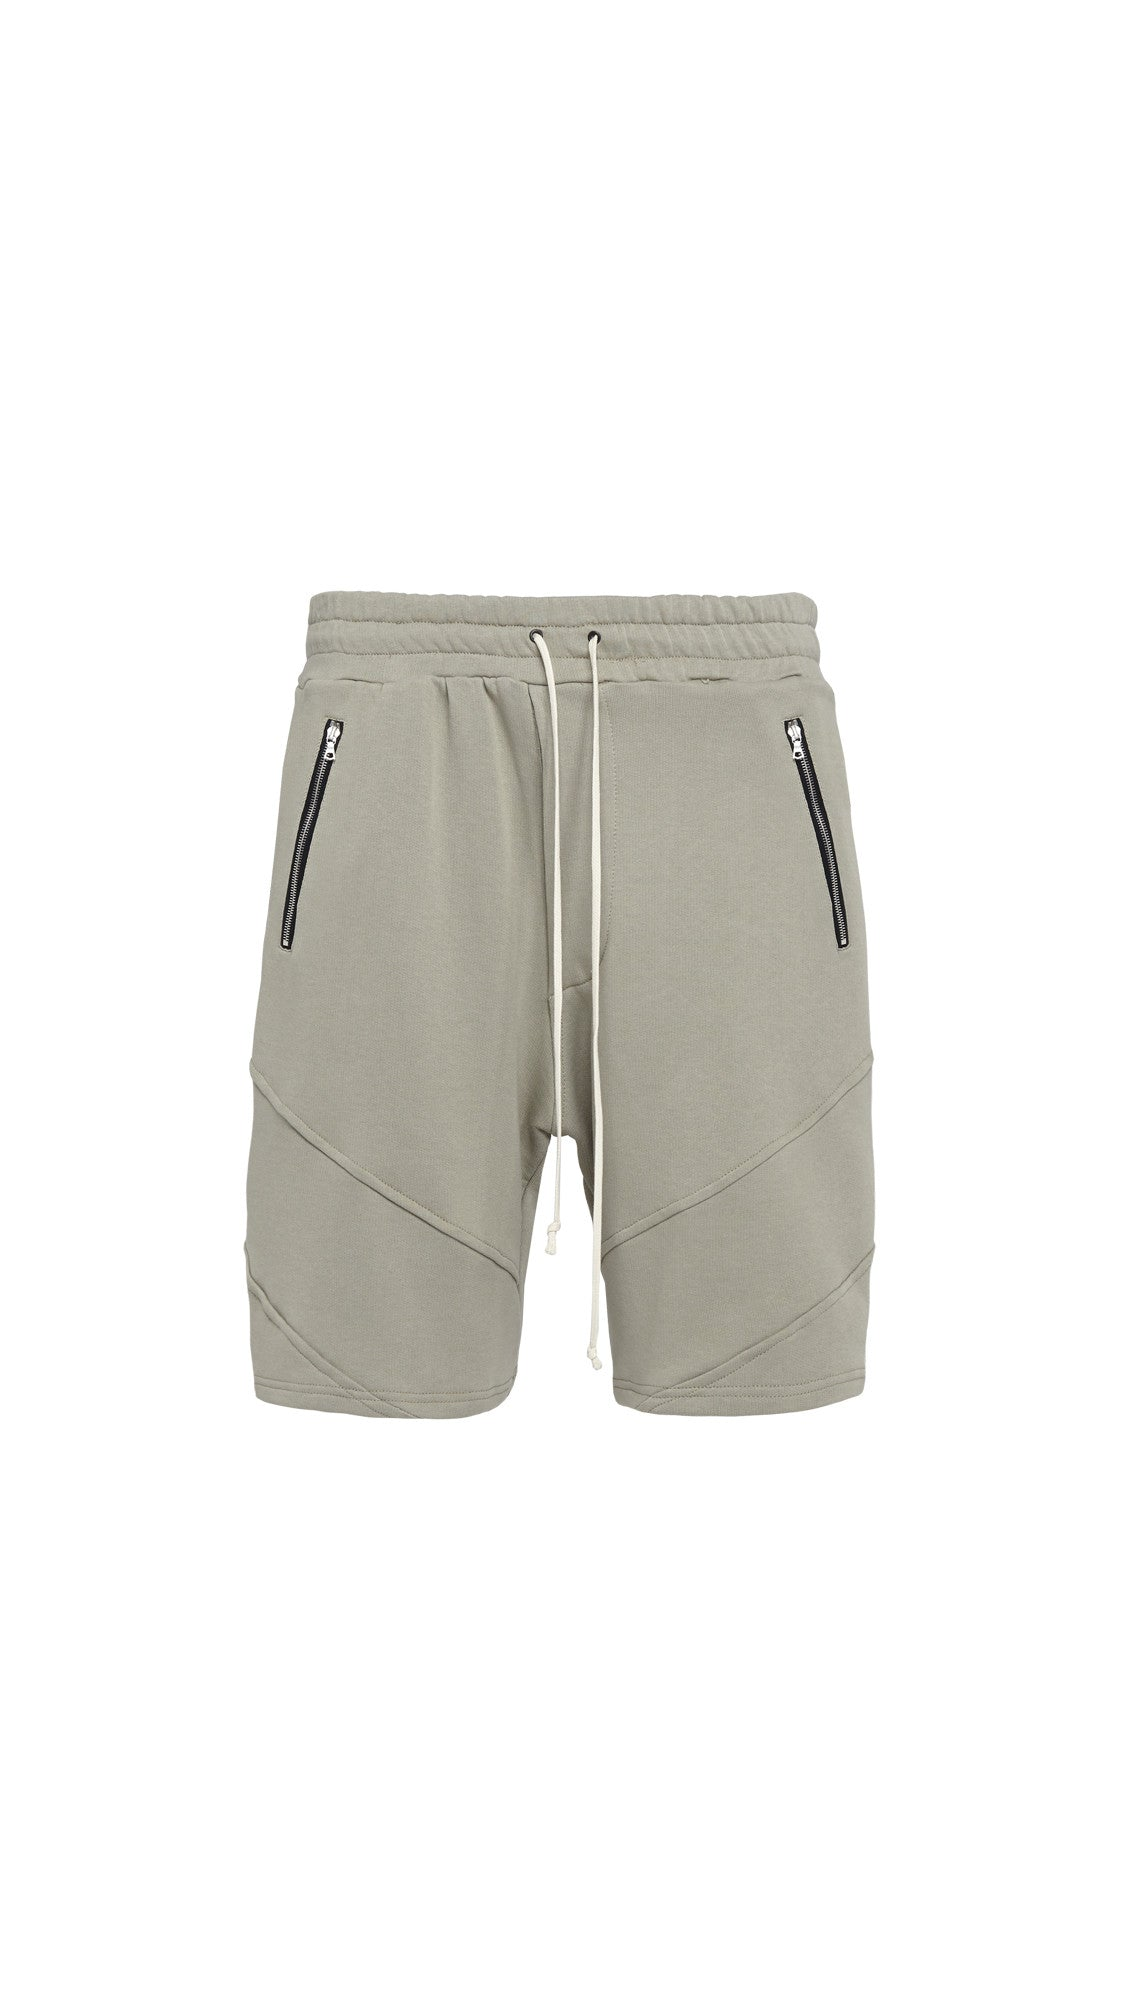 Arrow Shorts - Pastel